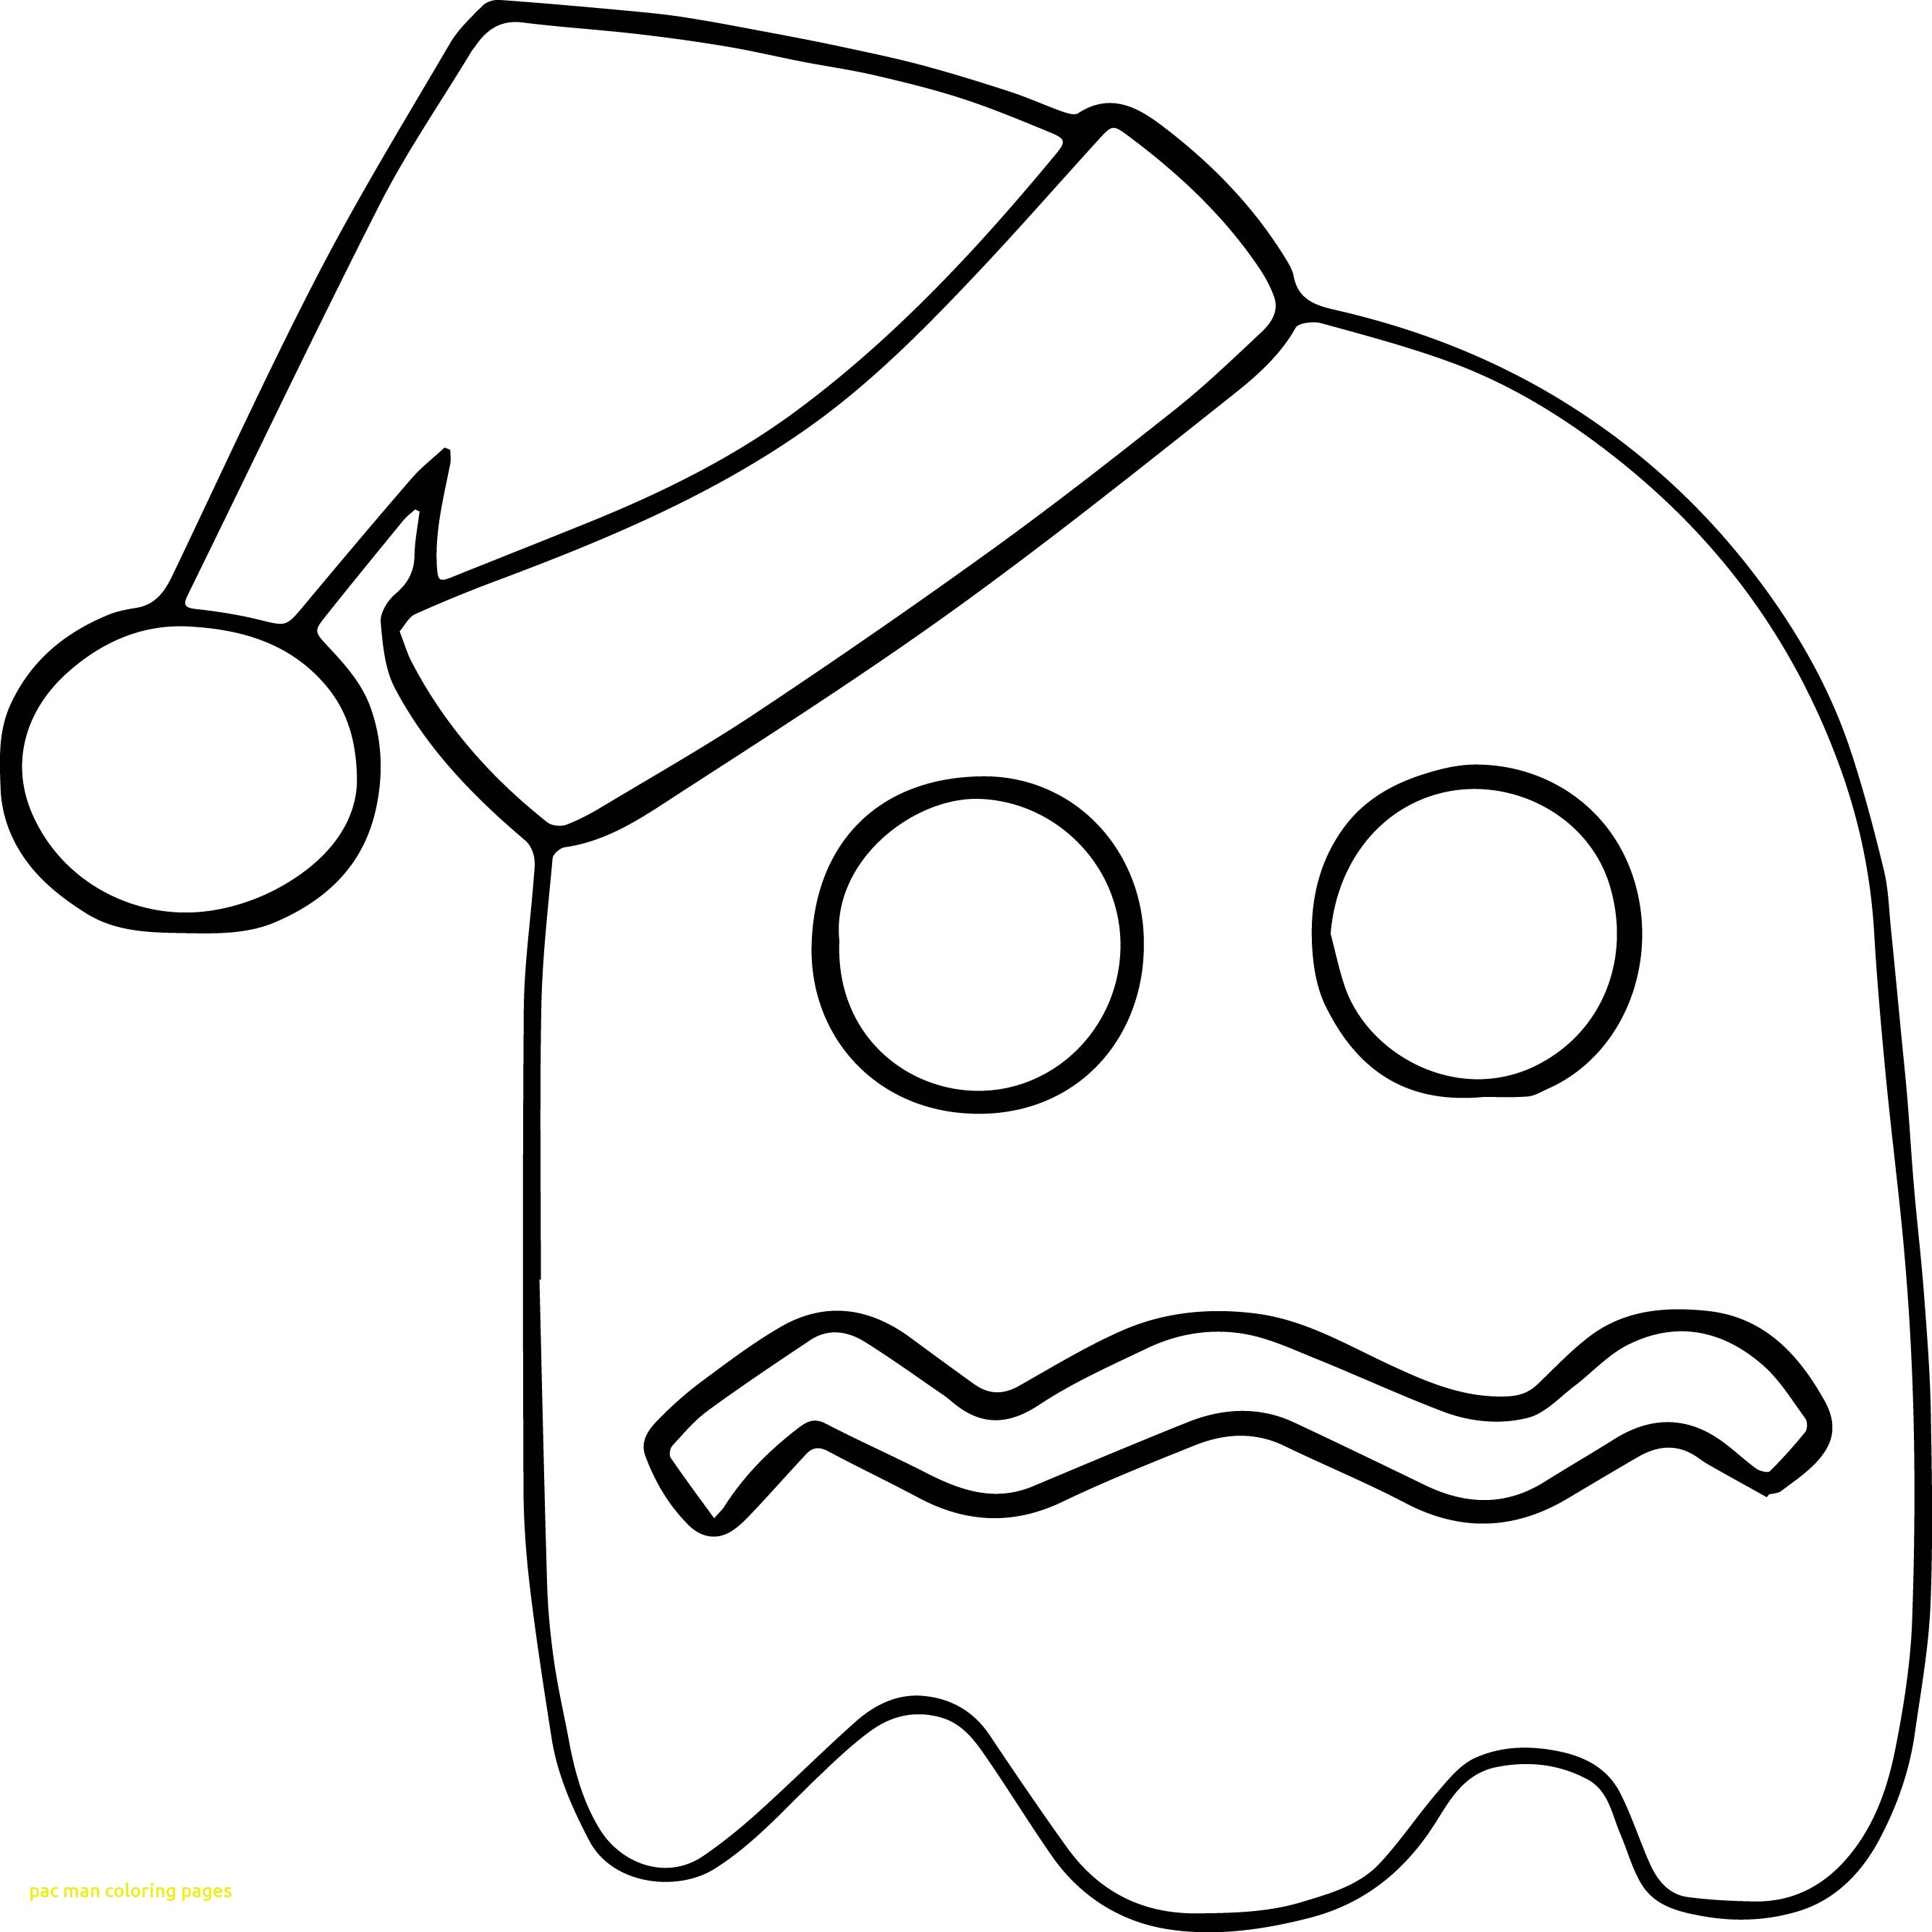 Pacman Ghost Drawing | Free download on ClipArtMag